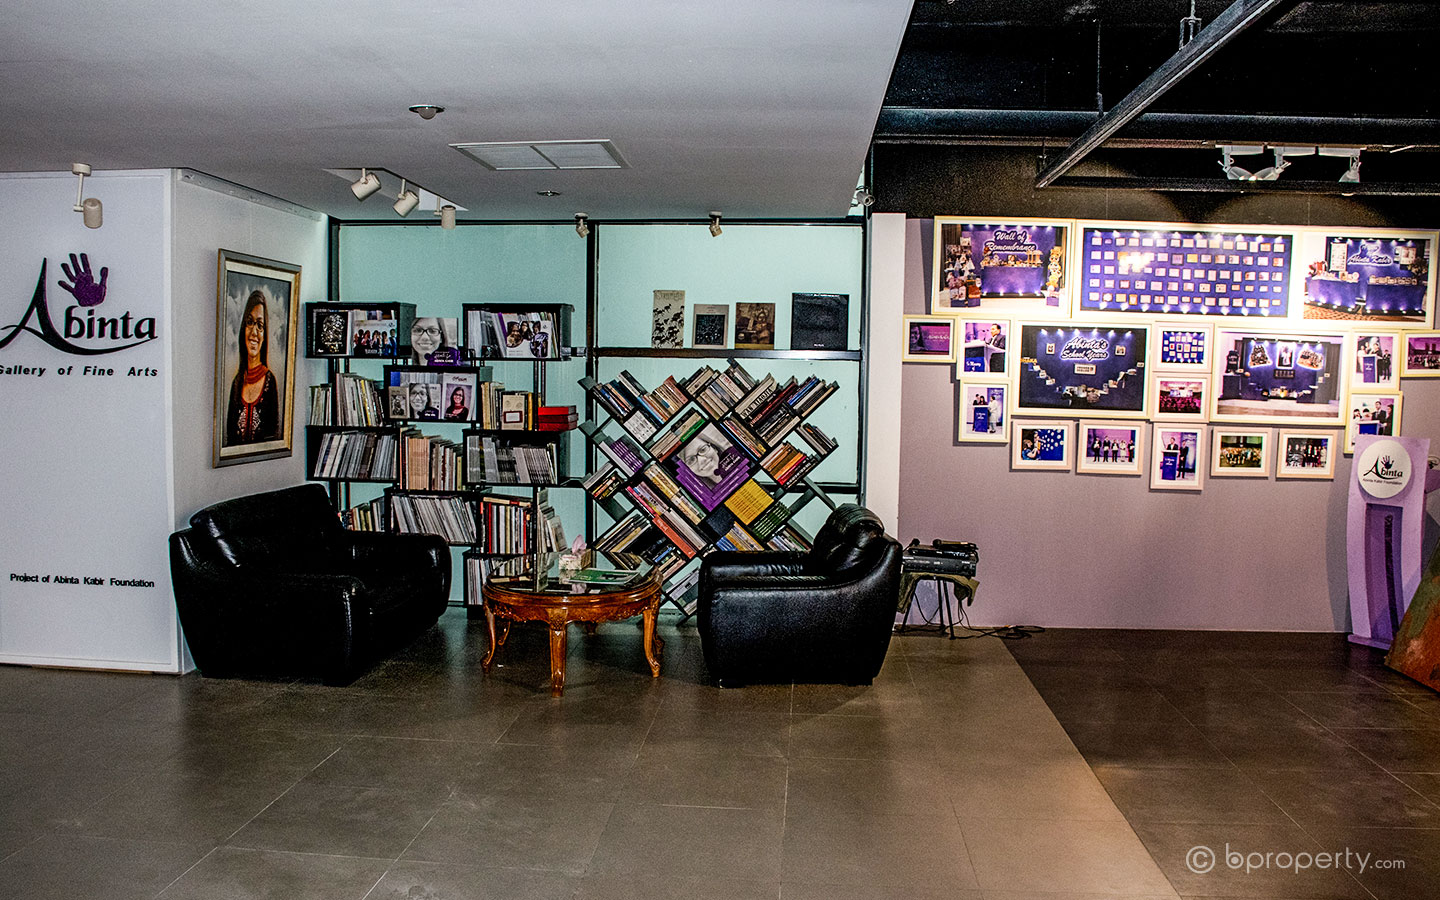 One of the most popular art galleries in Dhaka for young artists